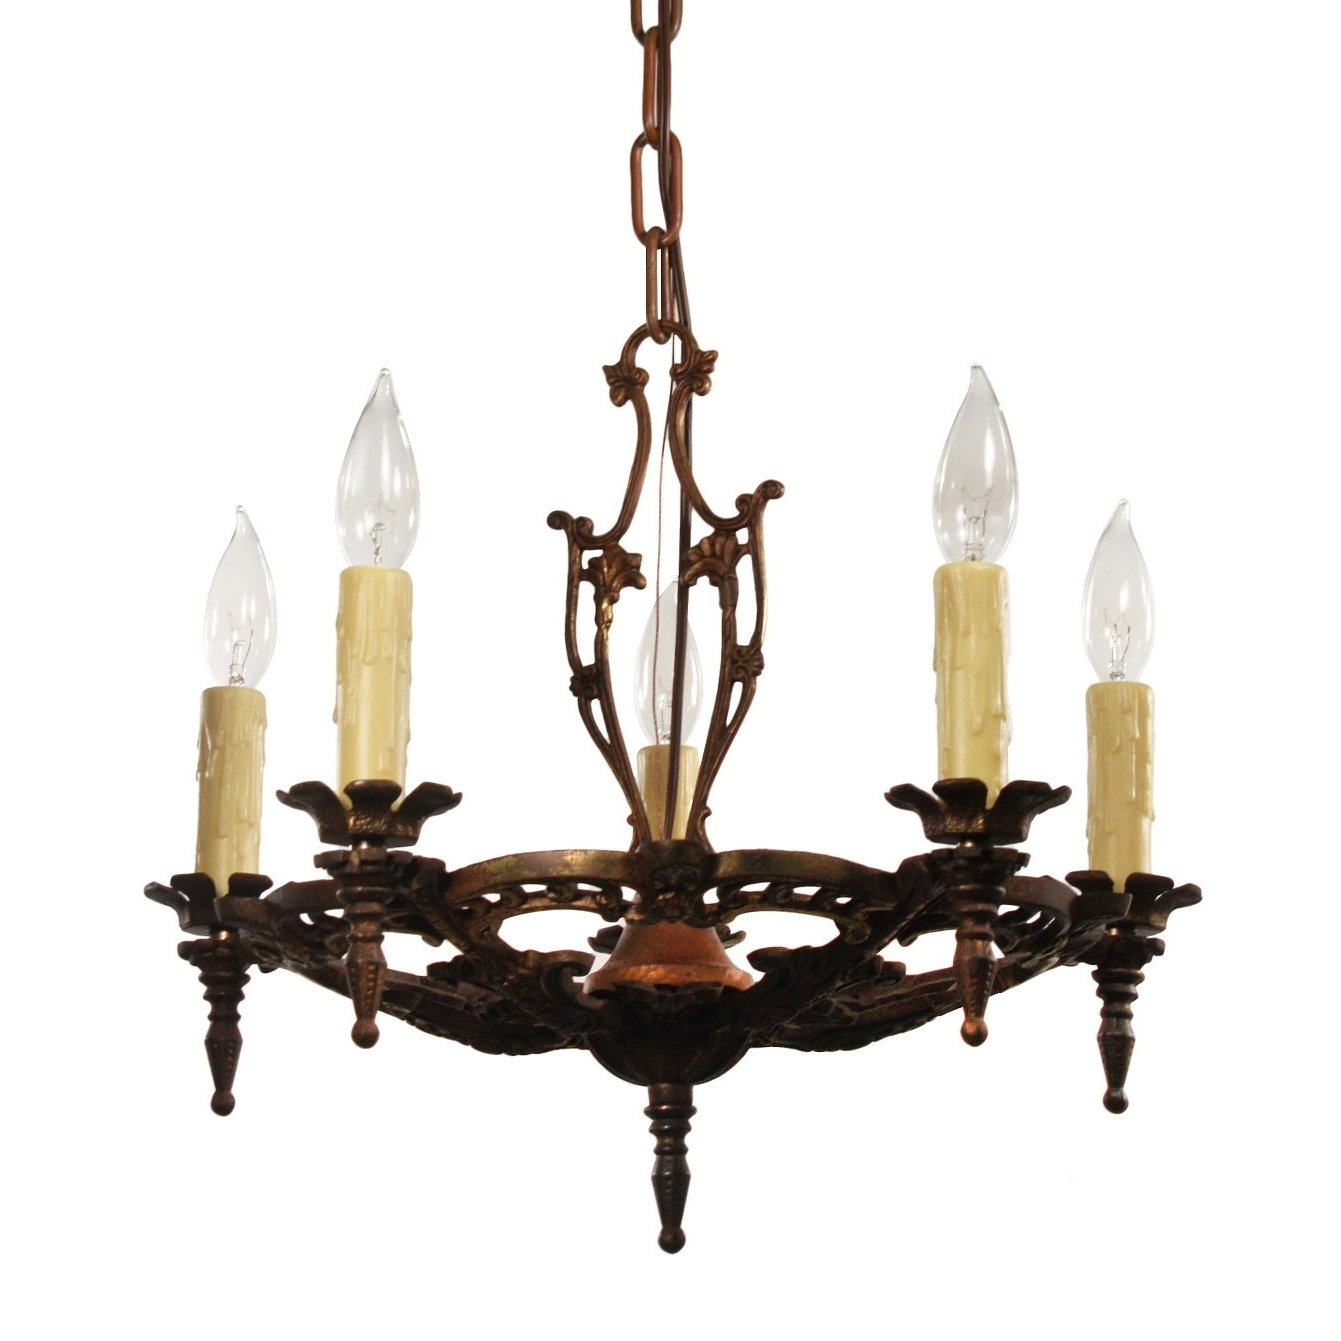 Cast Iron Antique Chandelier Within Best And Newest Antique Chandelier In Cast Iron, Antique Lighting – Preservation (View 8 of 15)